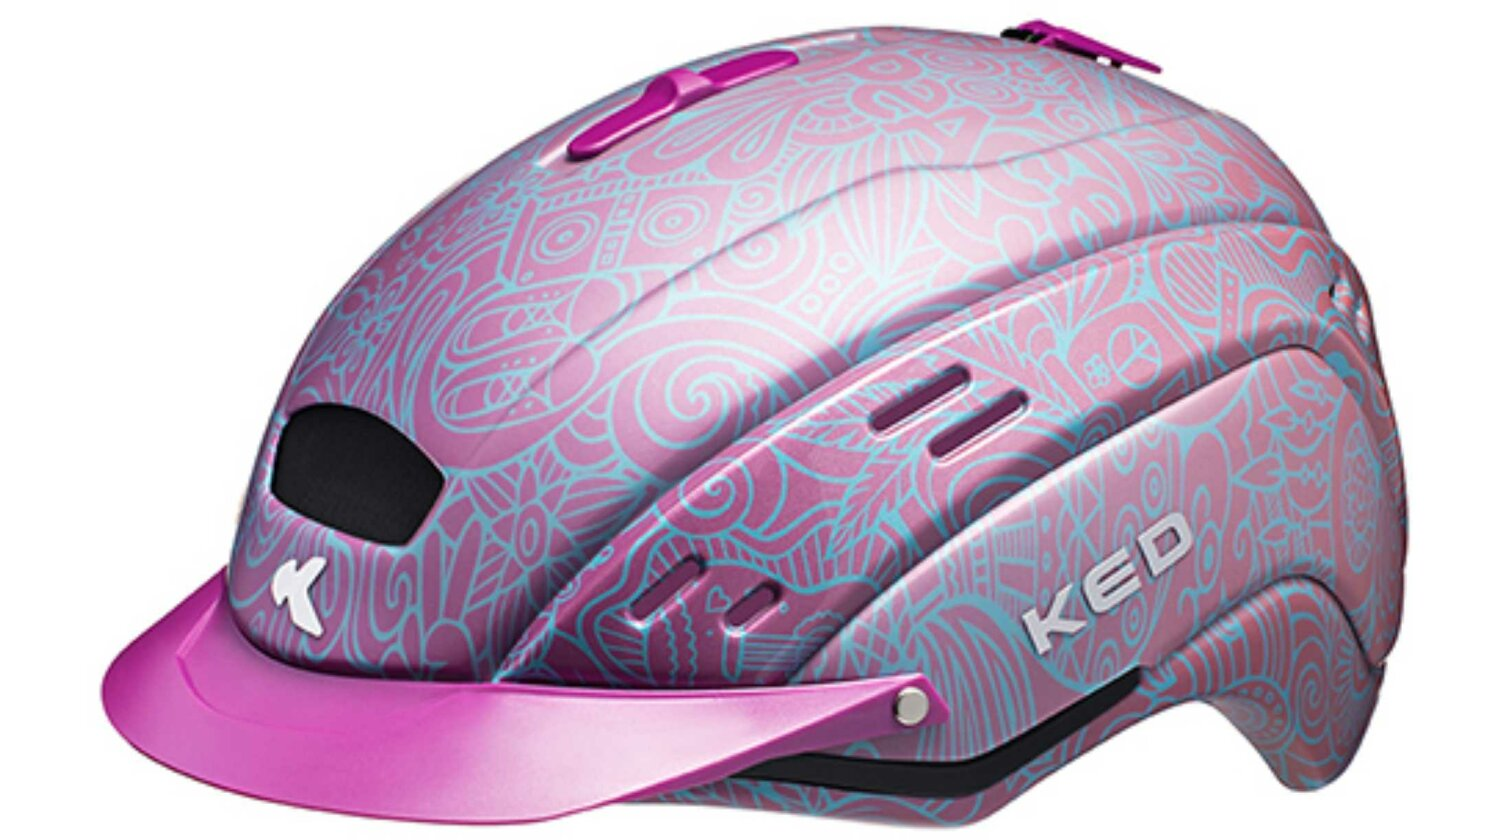 KED Cocon Coral Helm pink M/55-59 cm